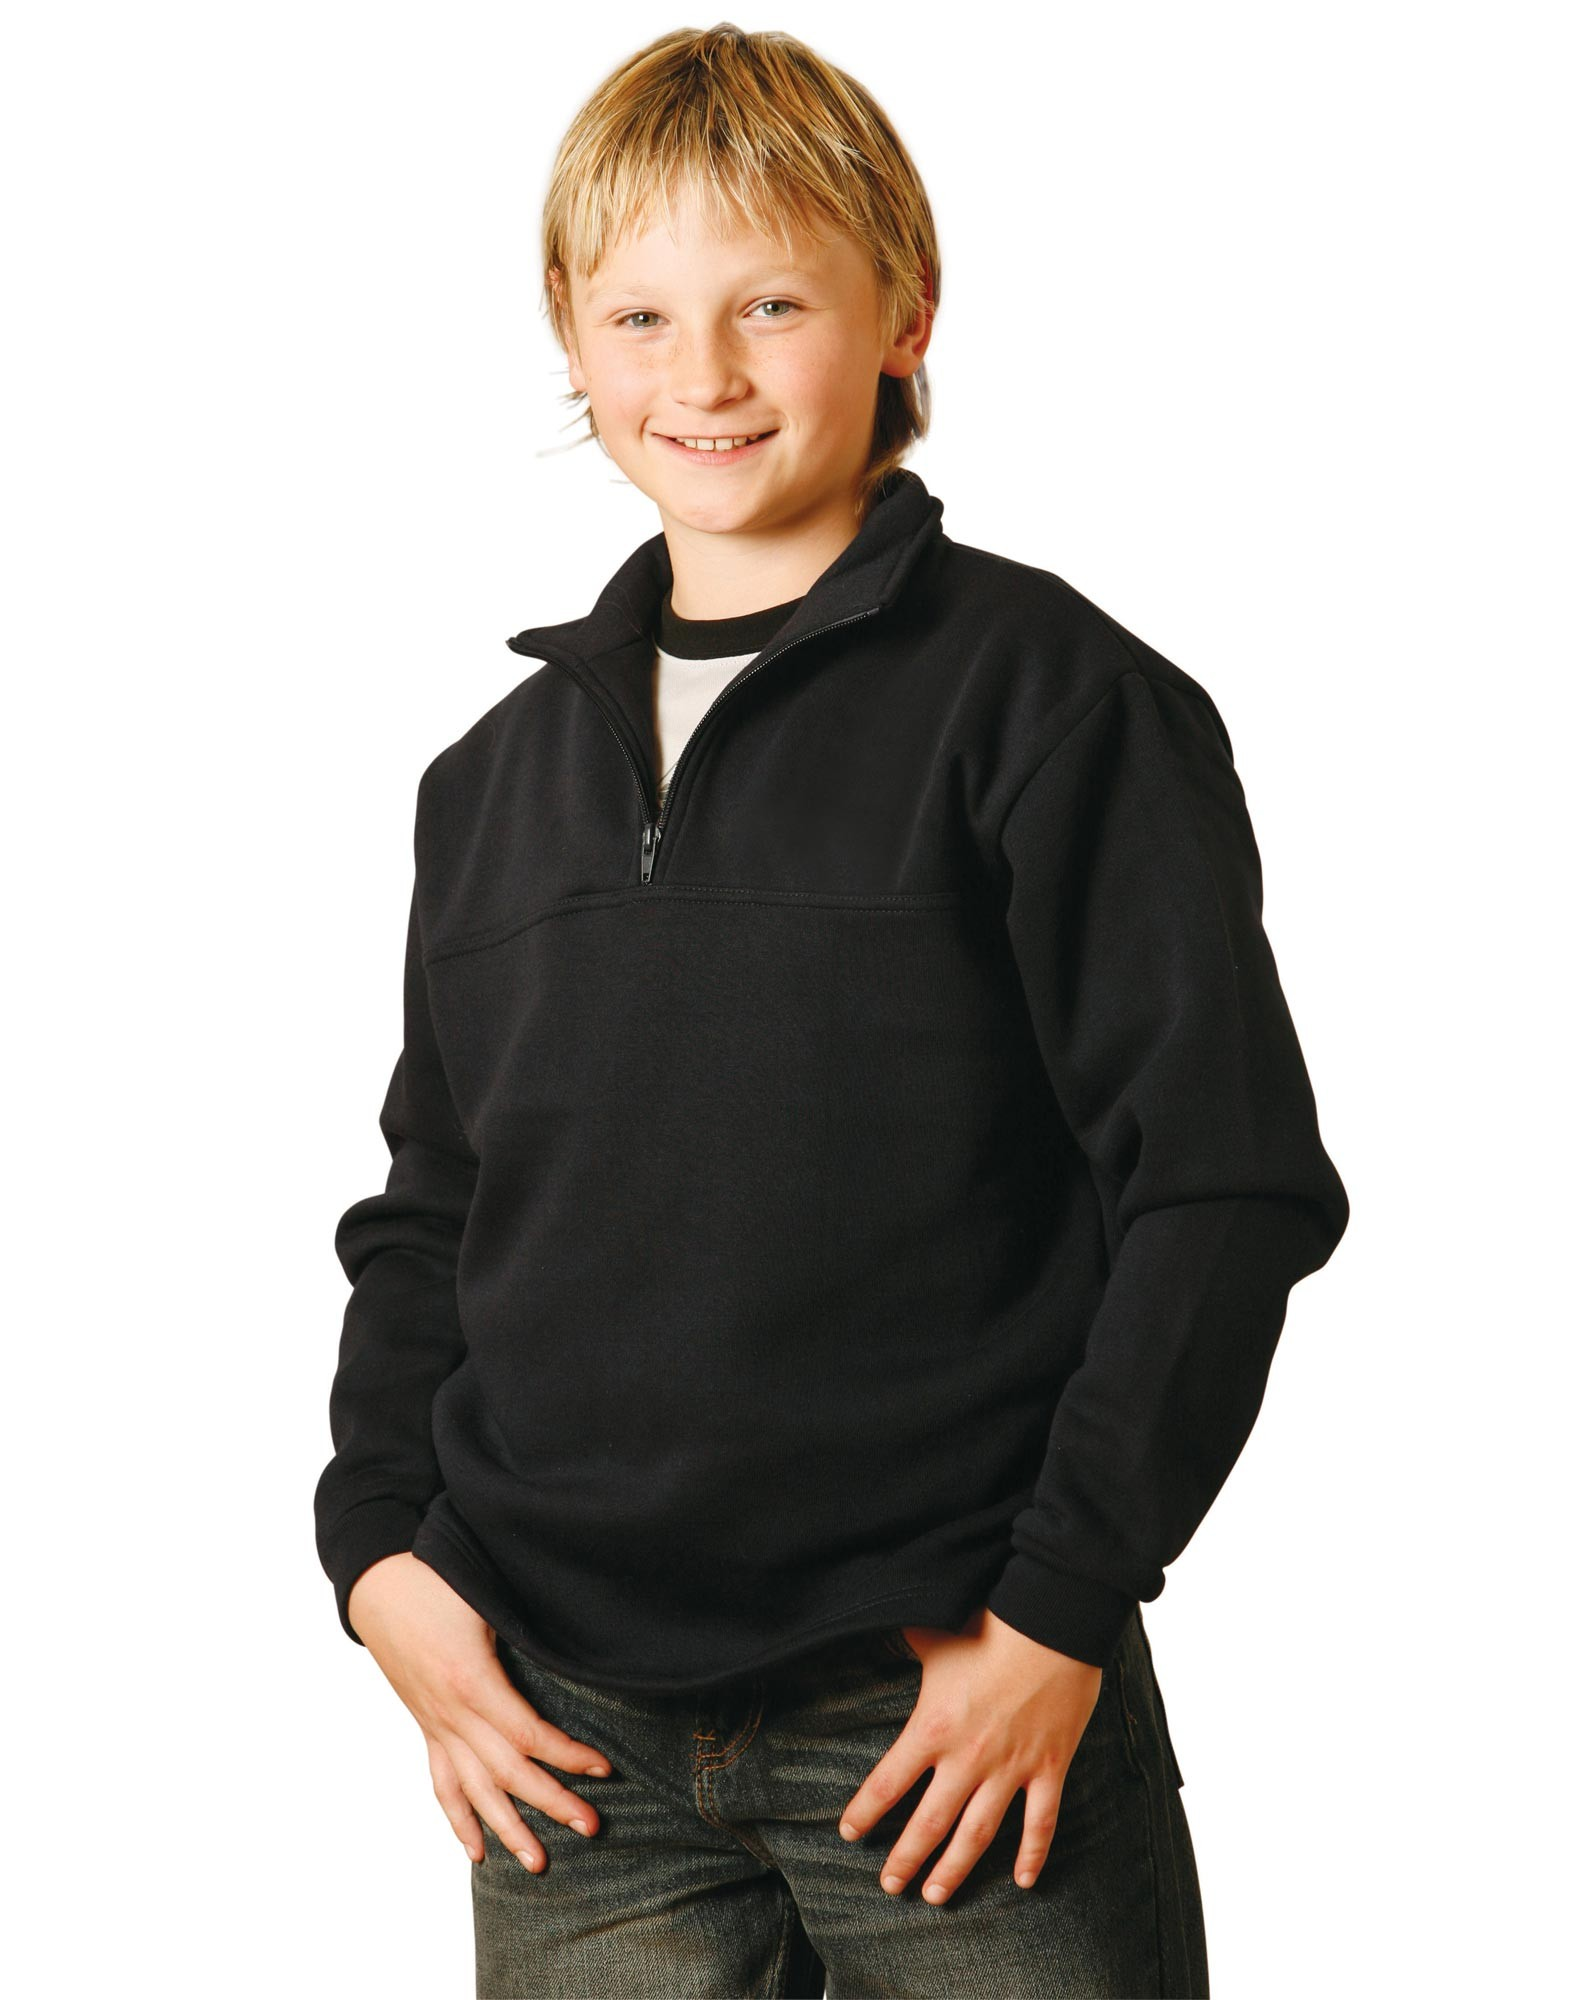 Falcon Kids 1/2 Zip Fleecy Sweat Top